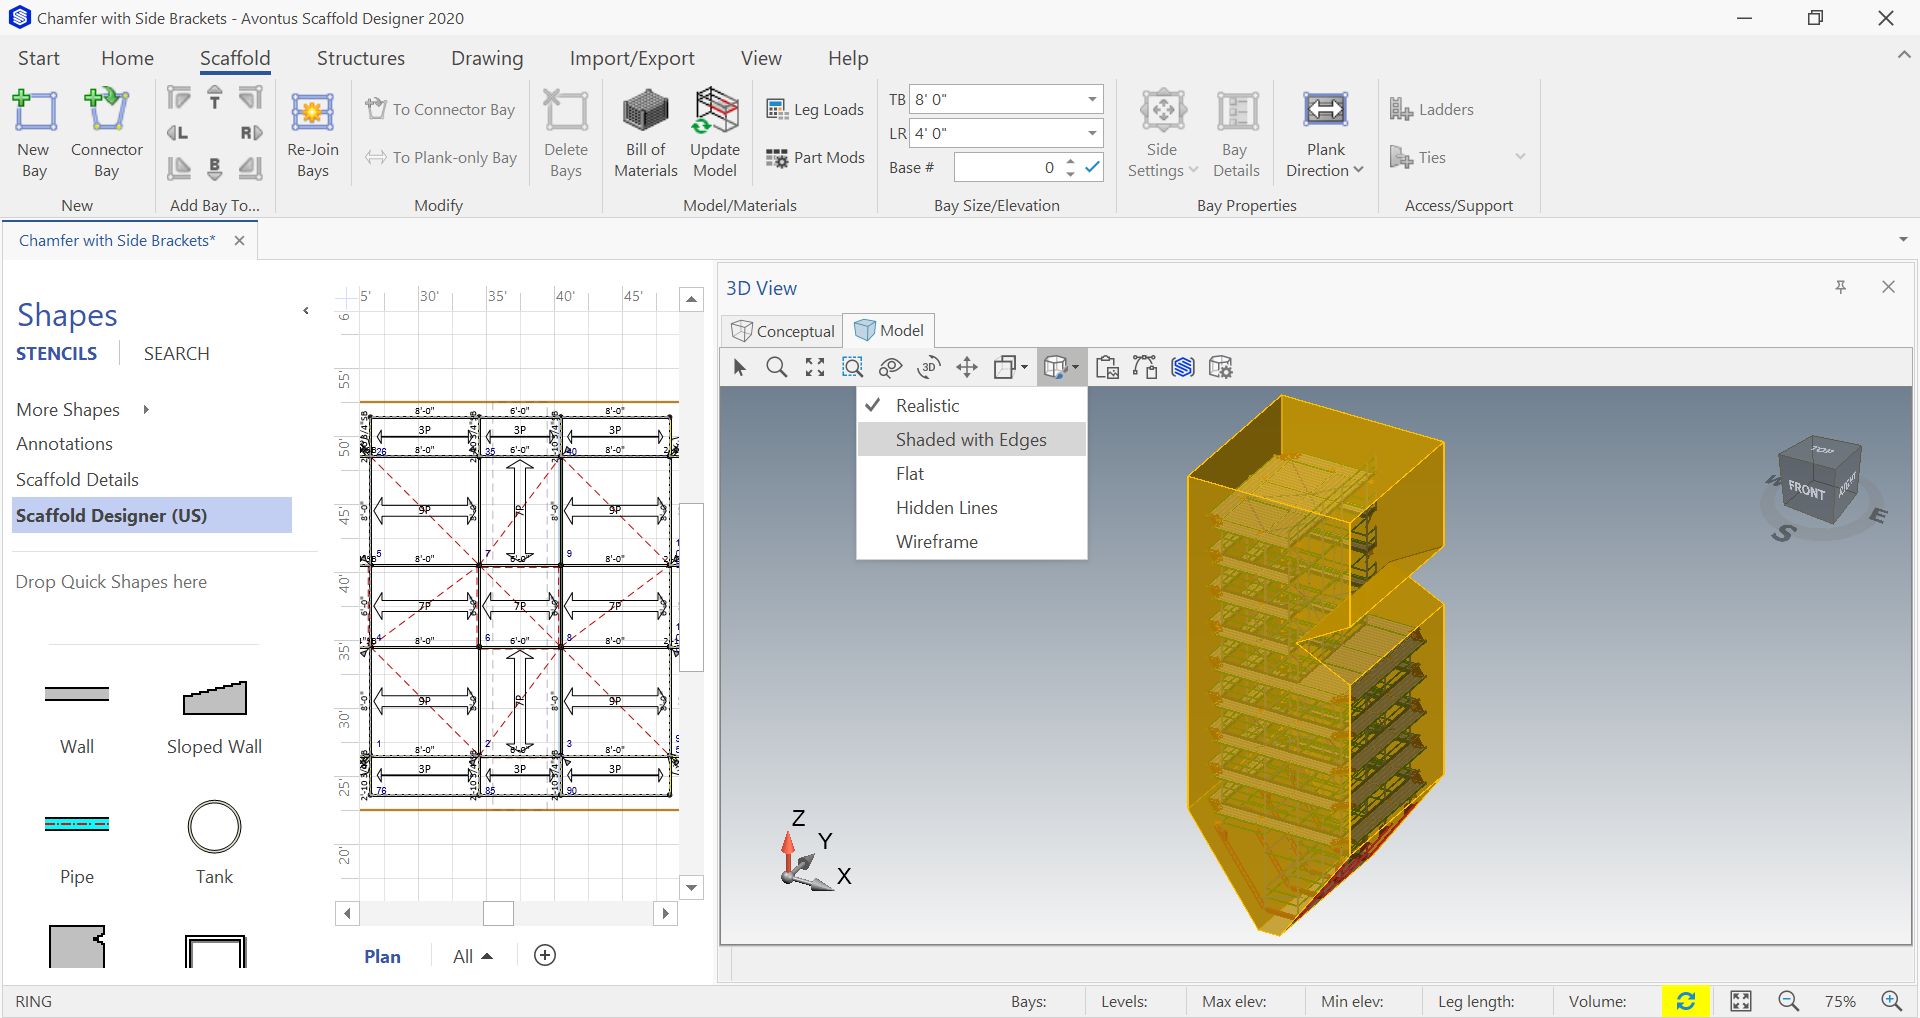 New shading modes are available with Scaffold Designer 2020 3D model view.